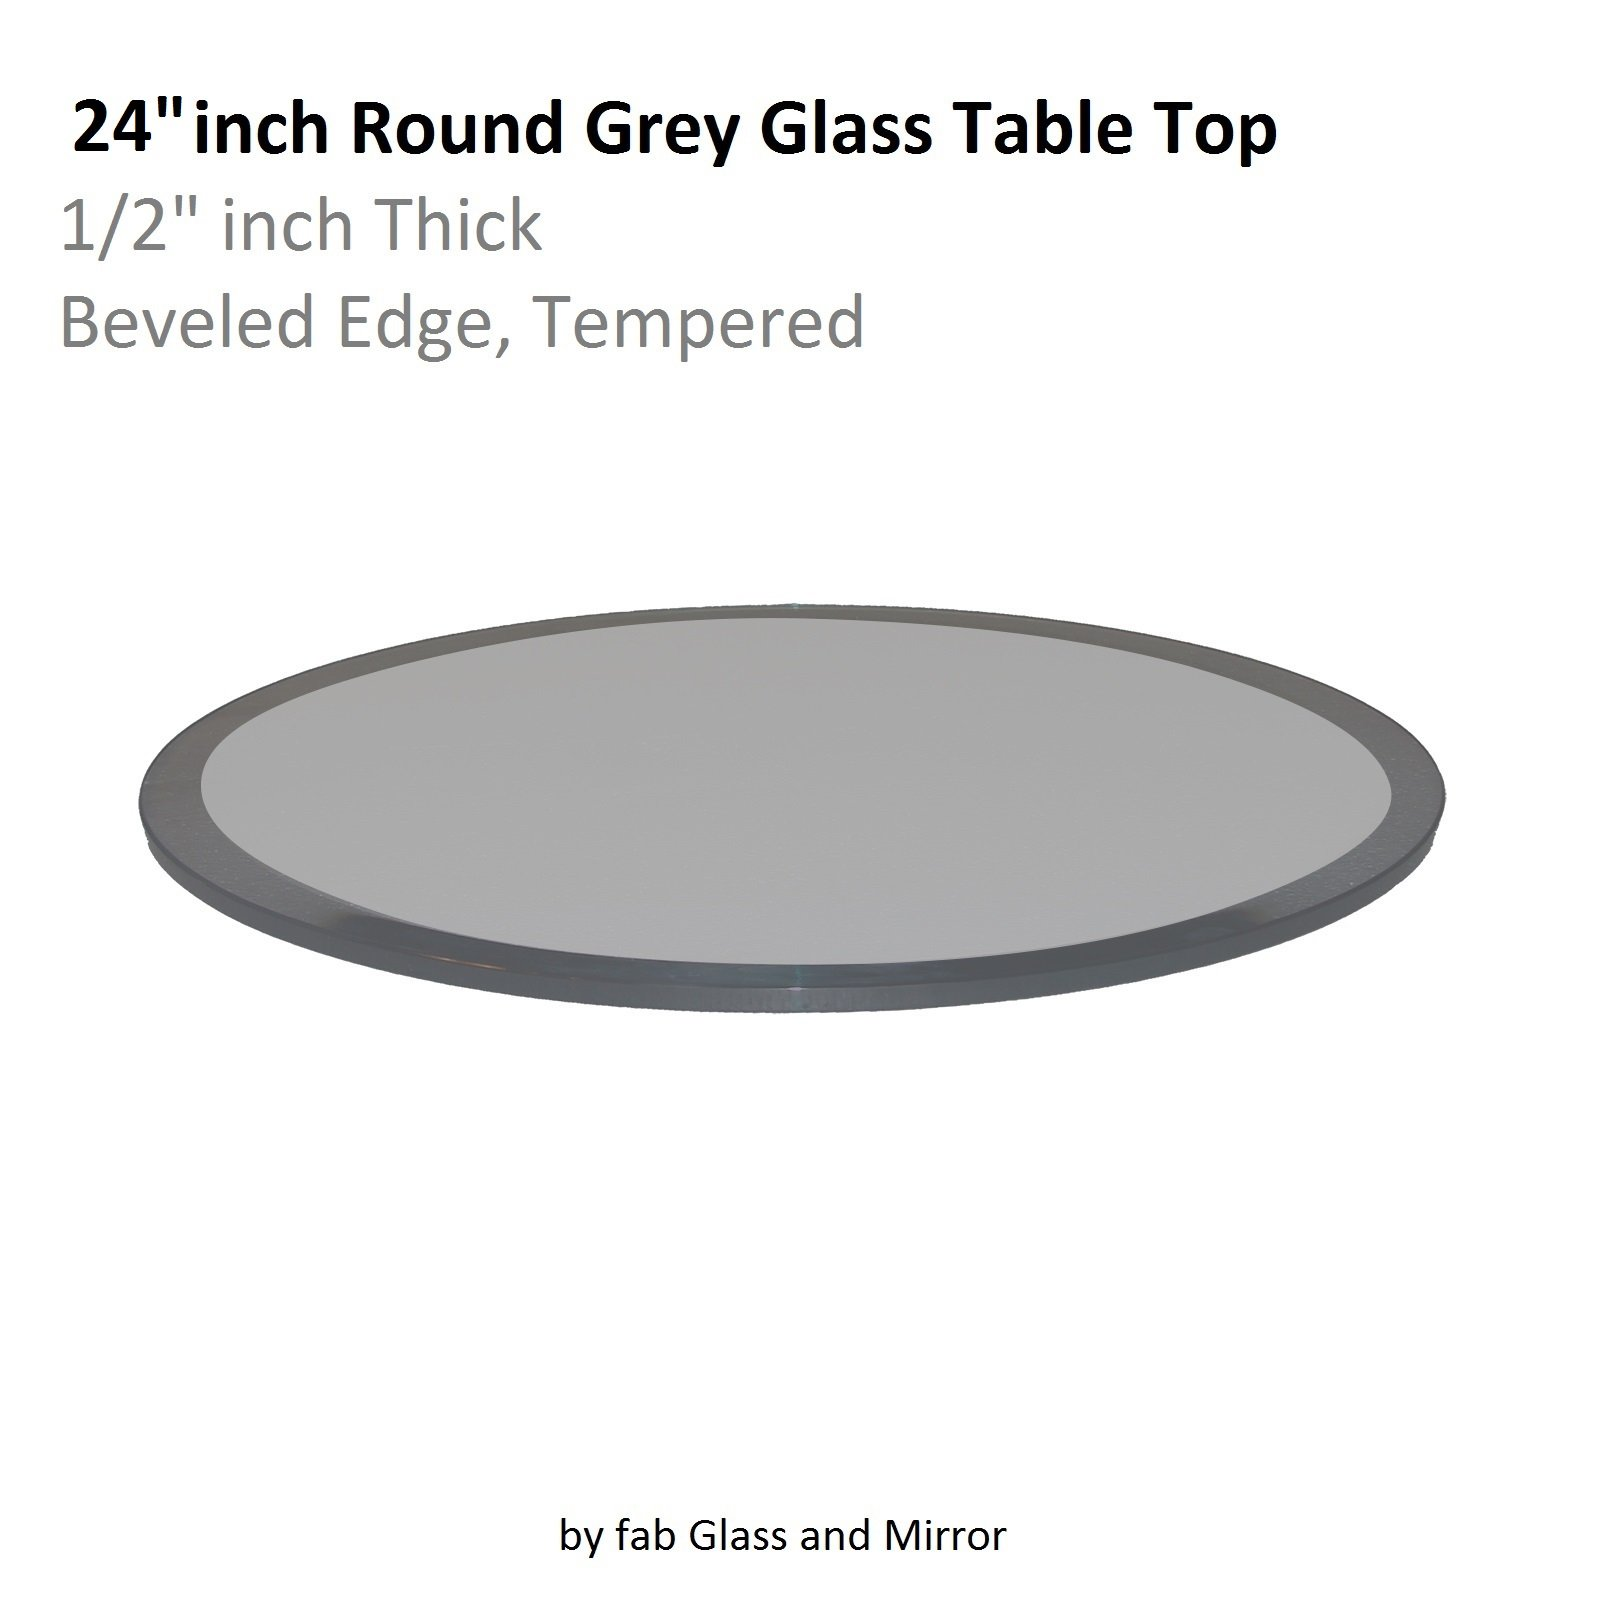 Fab Glass and Mirror Glass Table Top Round 1/2'' Thick Beveled Tempered, 24'' L x 24'' W, Grey